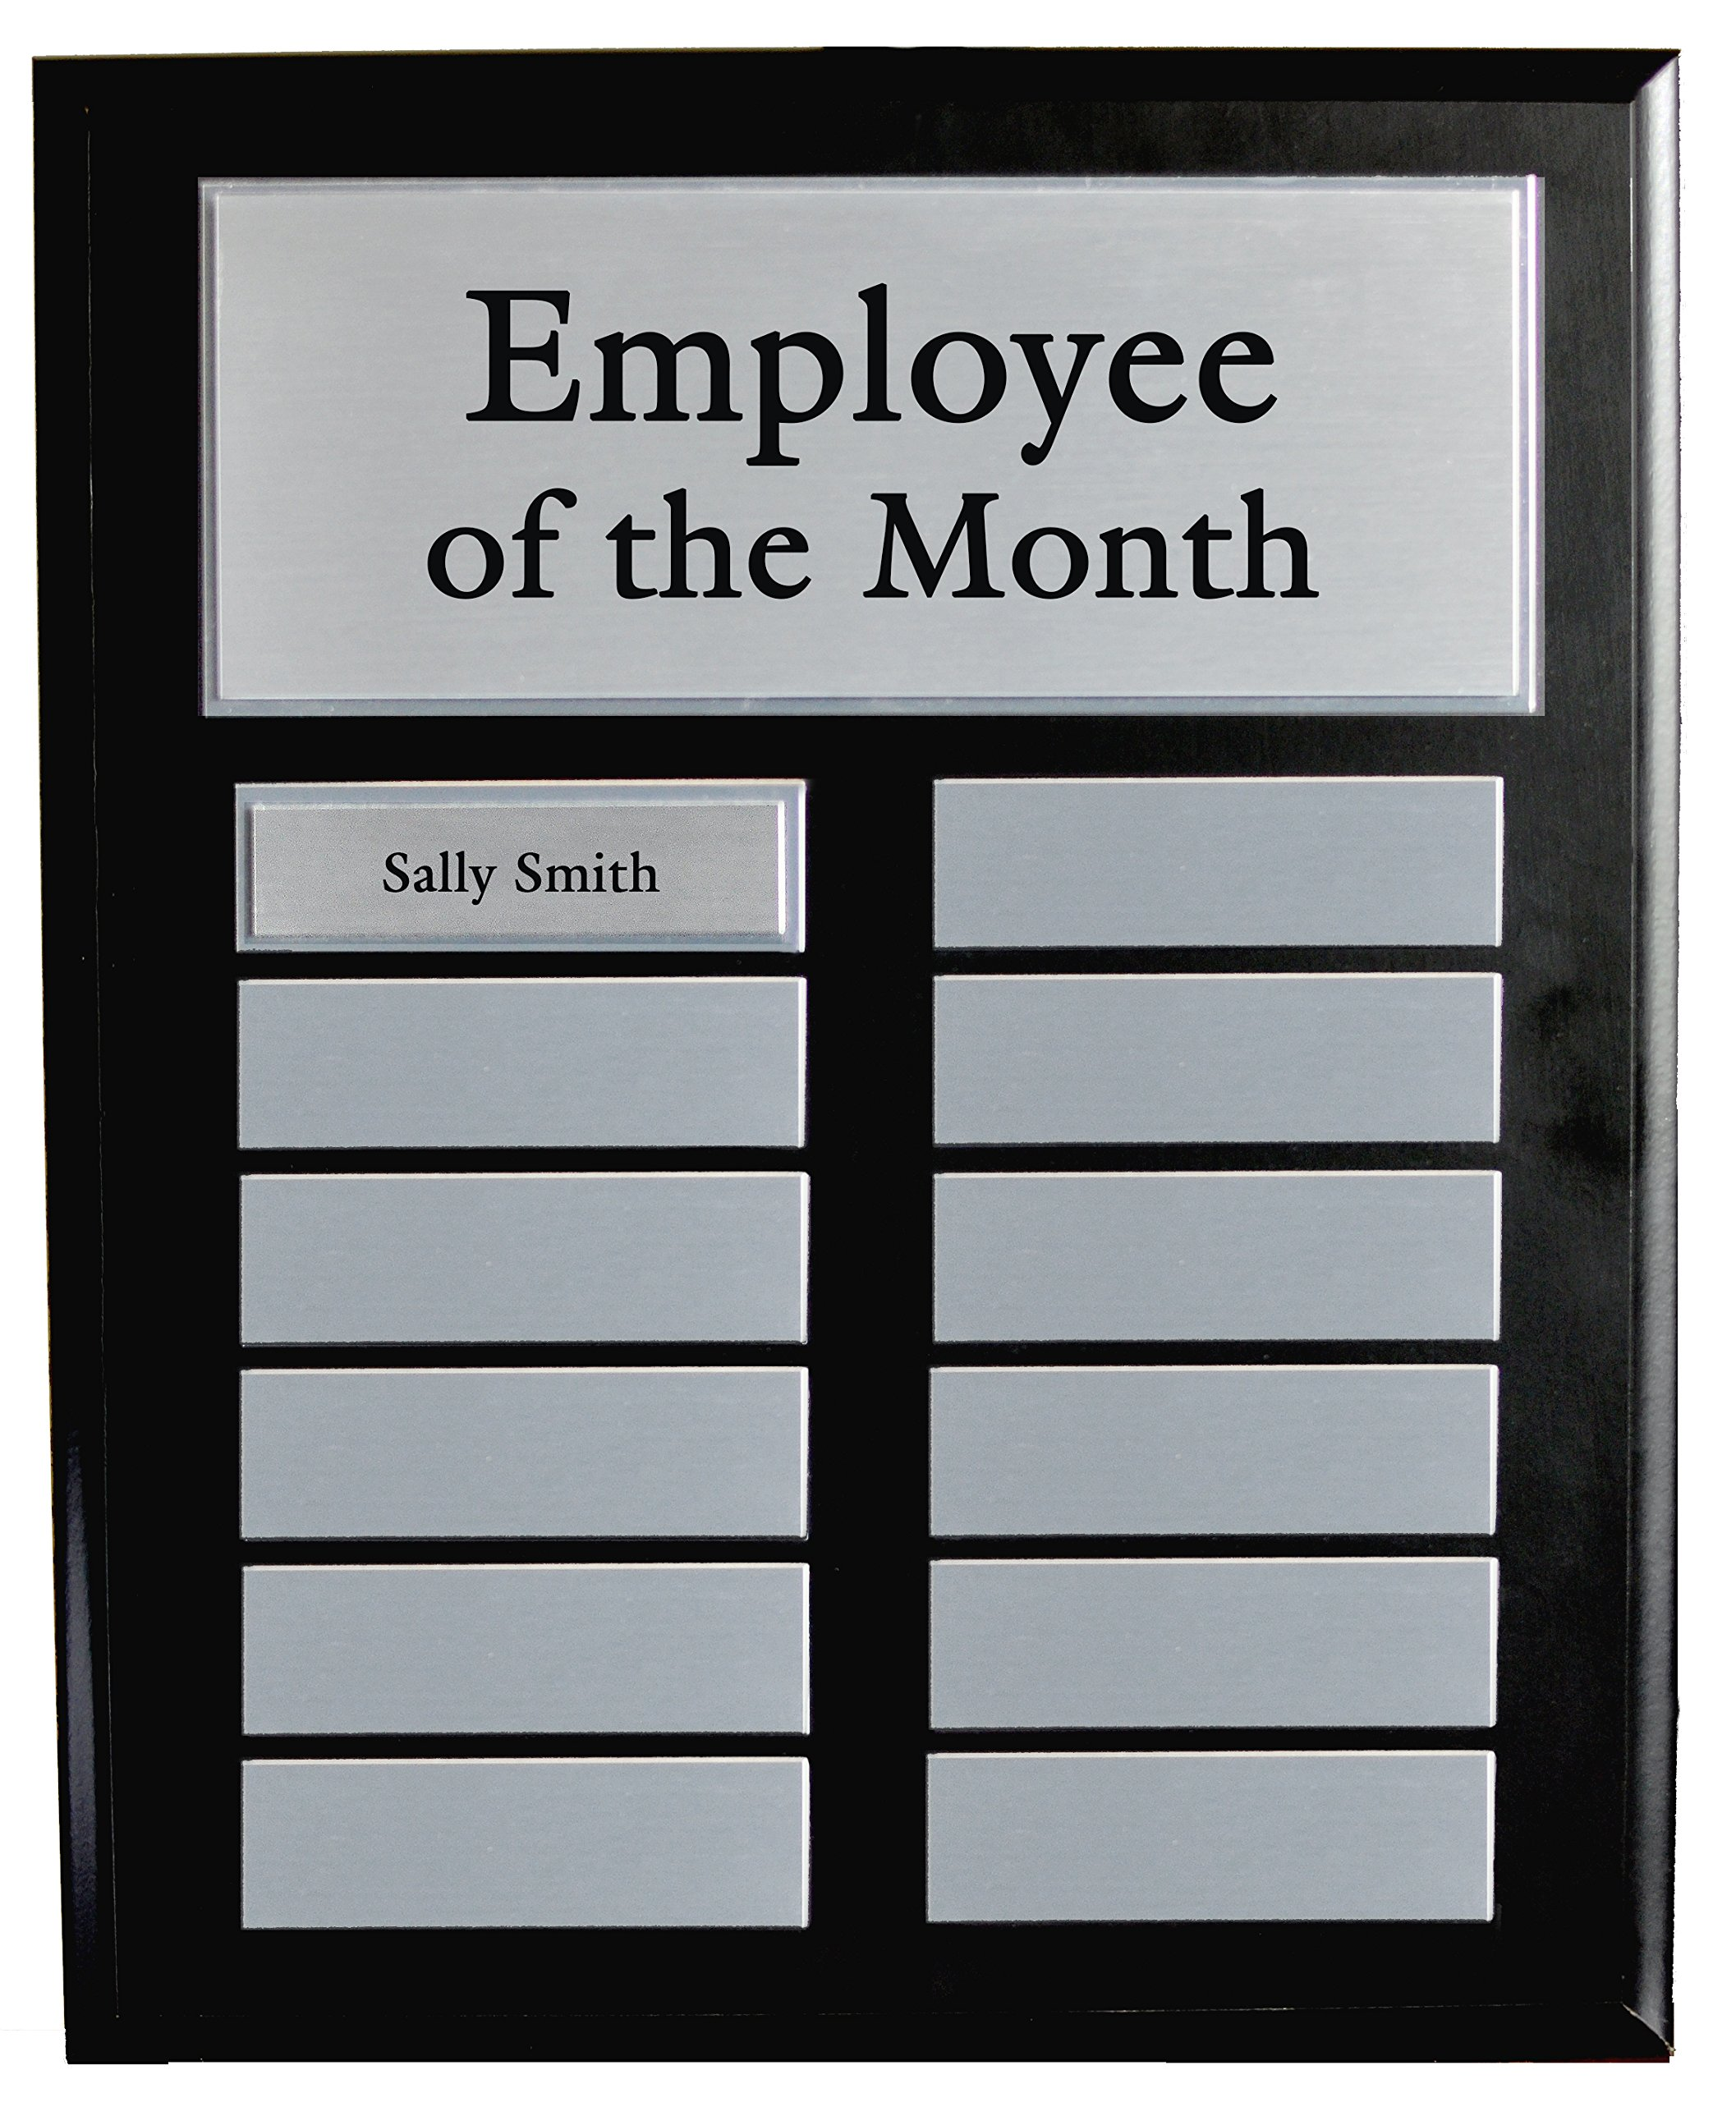 Employee of the Month Award - Perpetual Employee of the Month Plaque - 11'' x 13'' (Plague)